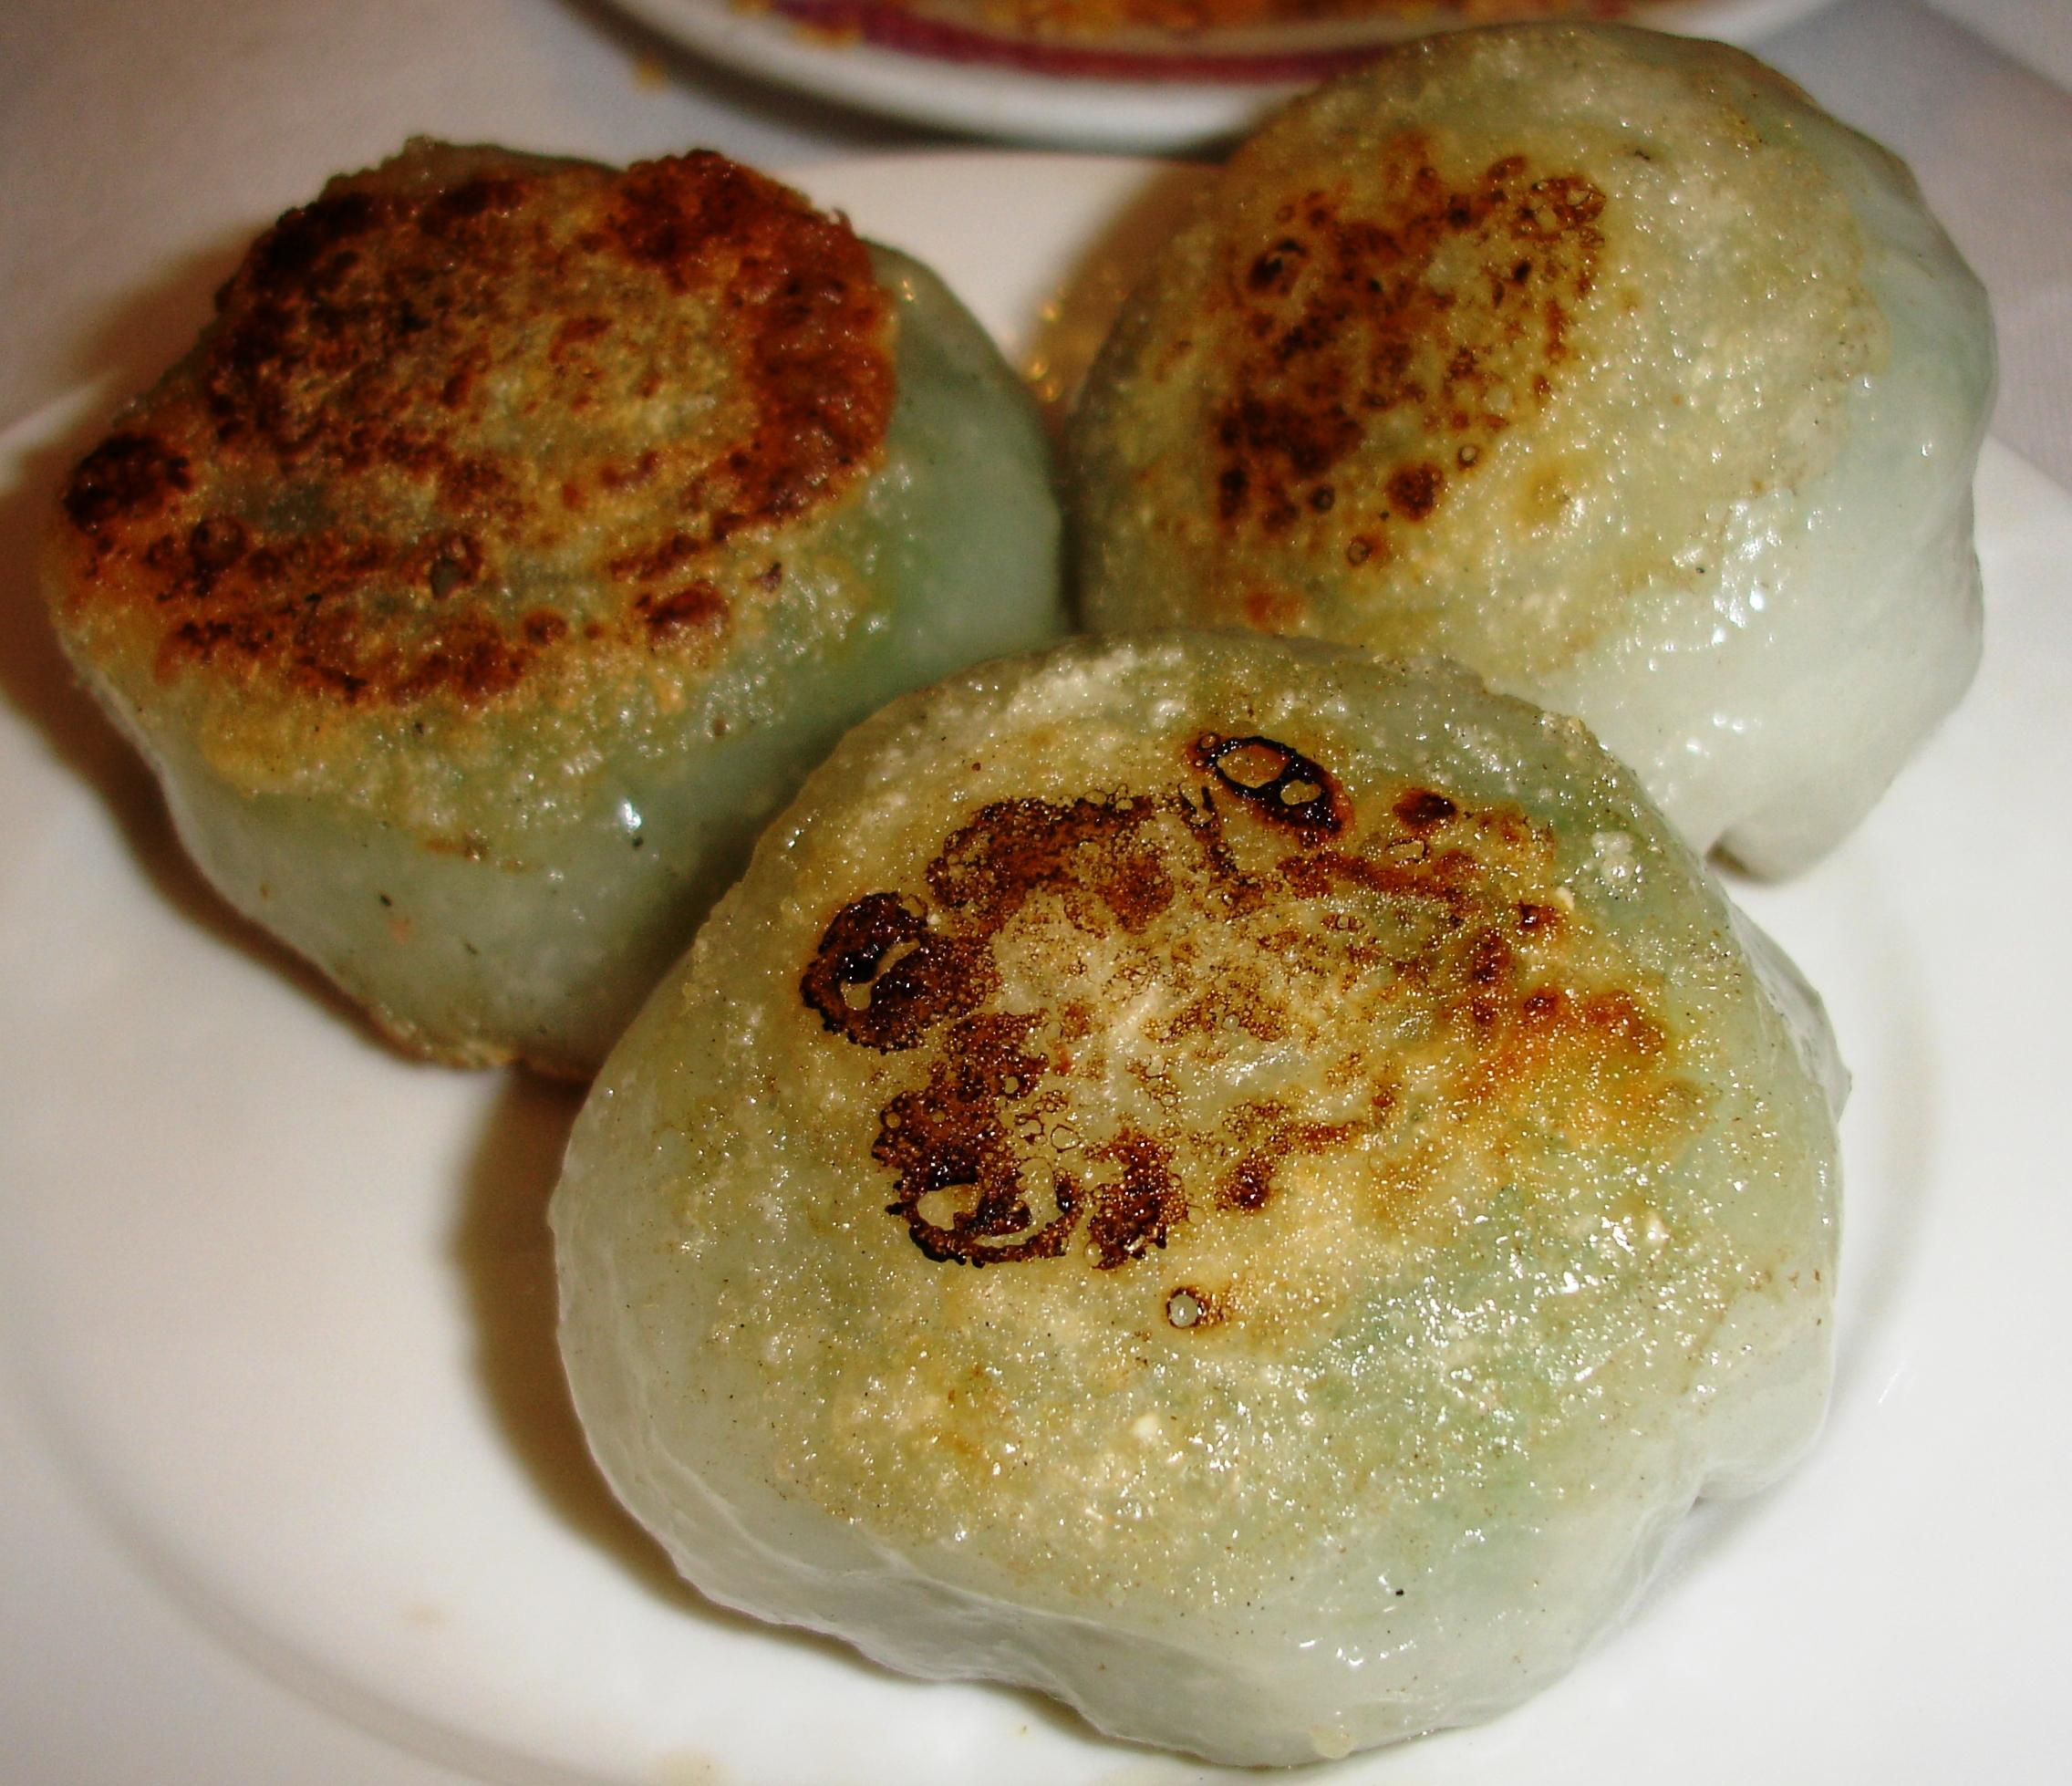 These are chive dumplings filled with Chinese chives and shrimp, one of our favorites.